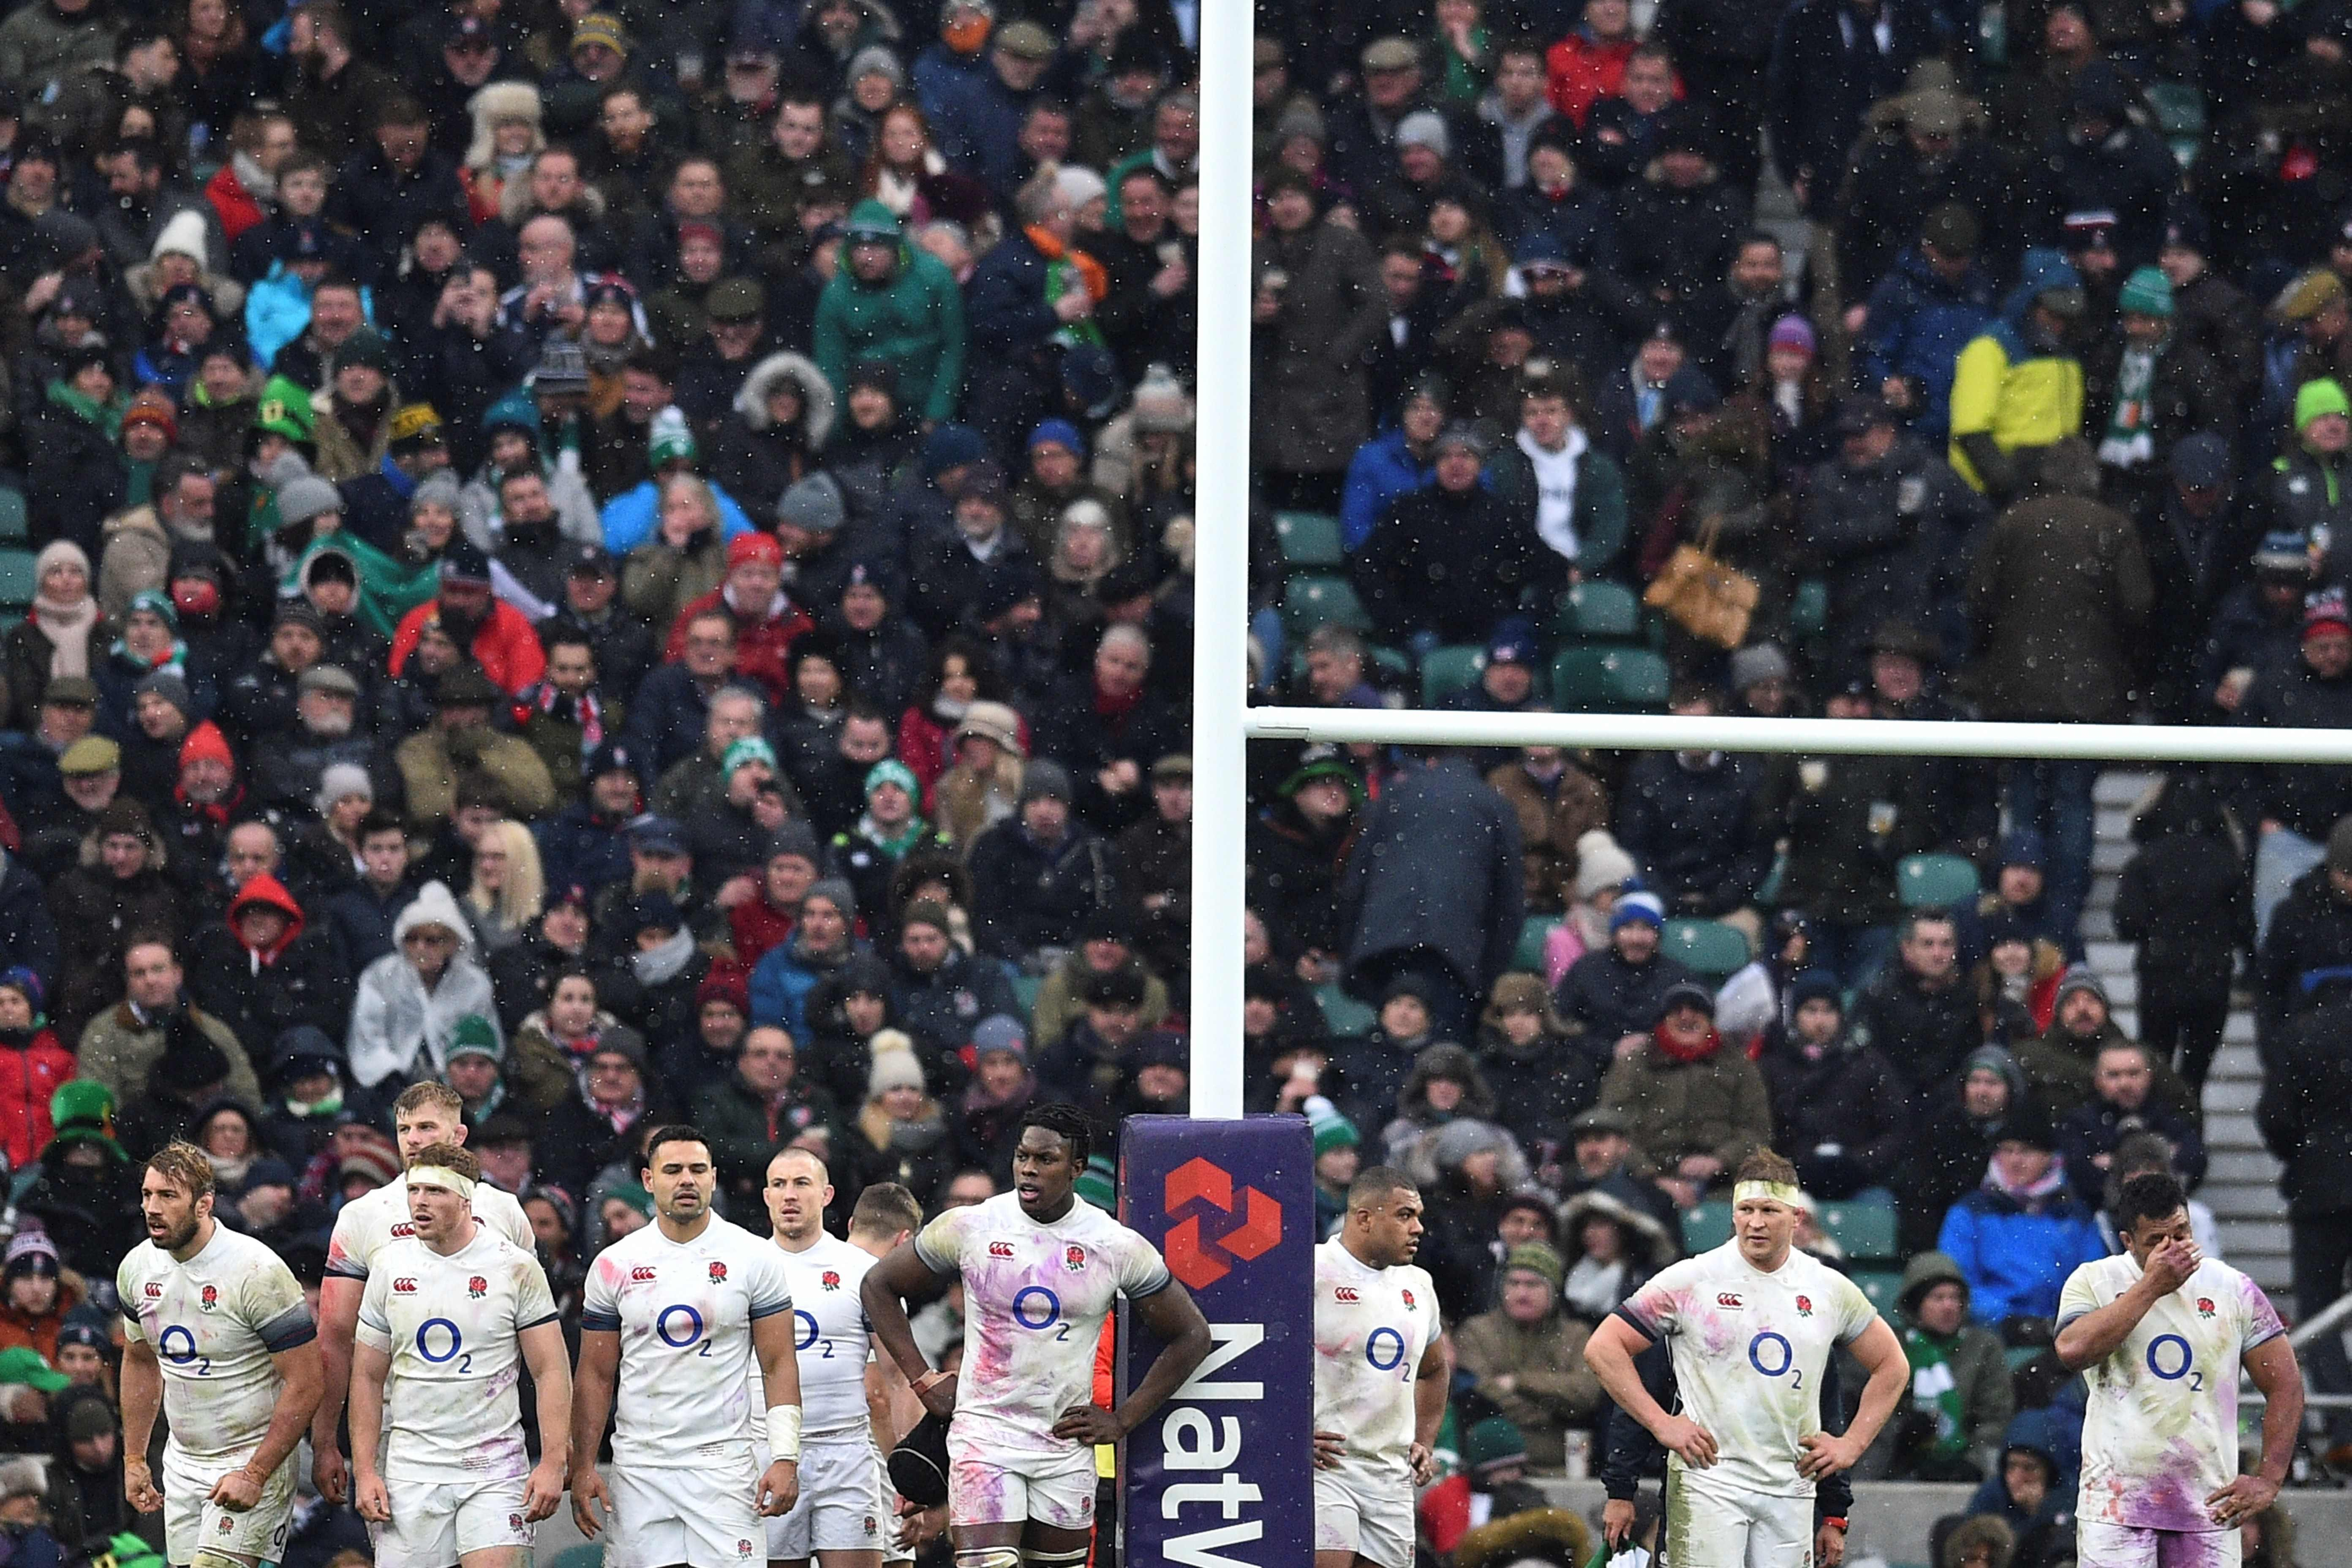 England endured a difficult Six Nations in 2018, losing three of their five matches